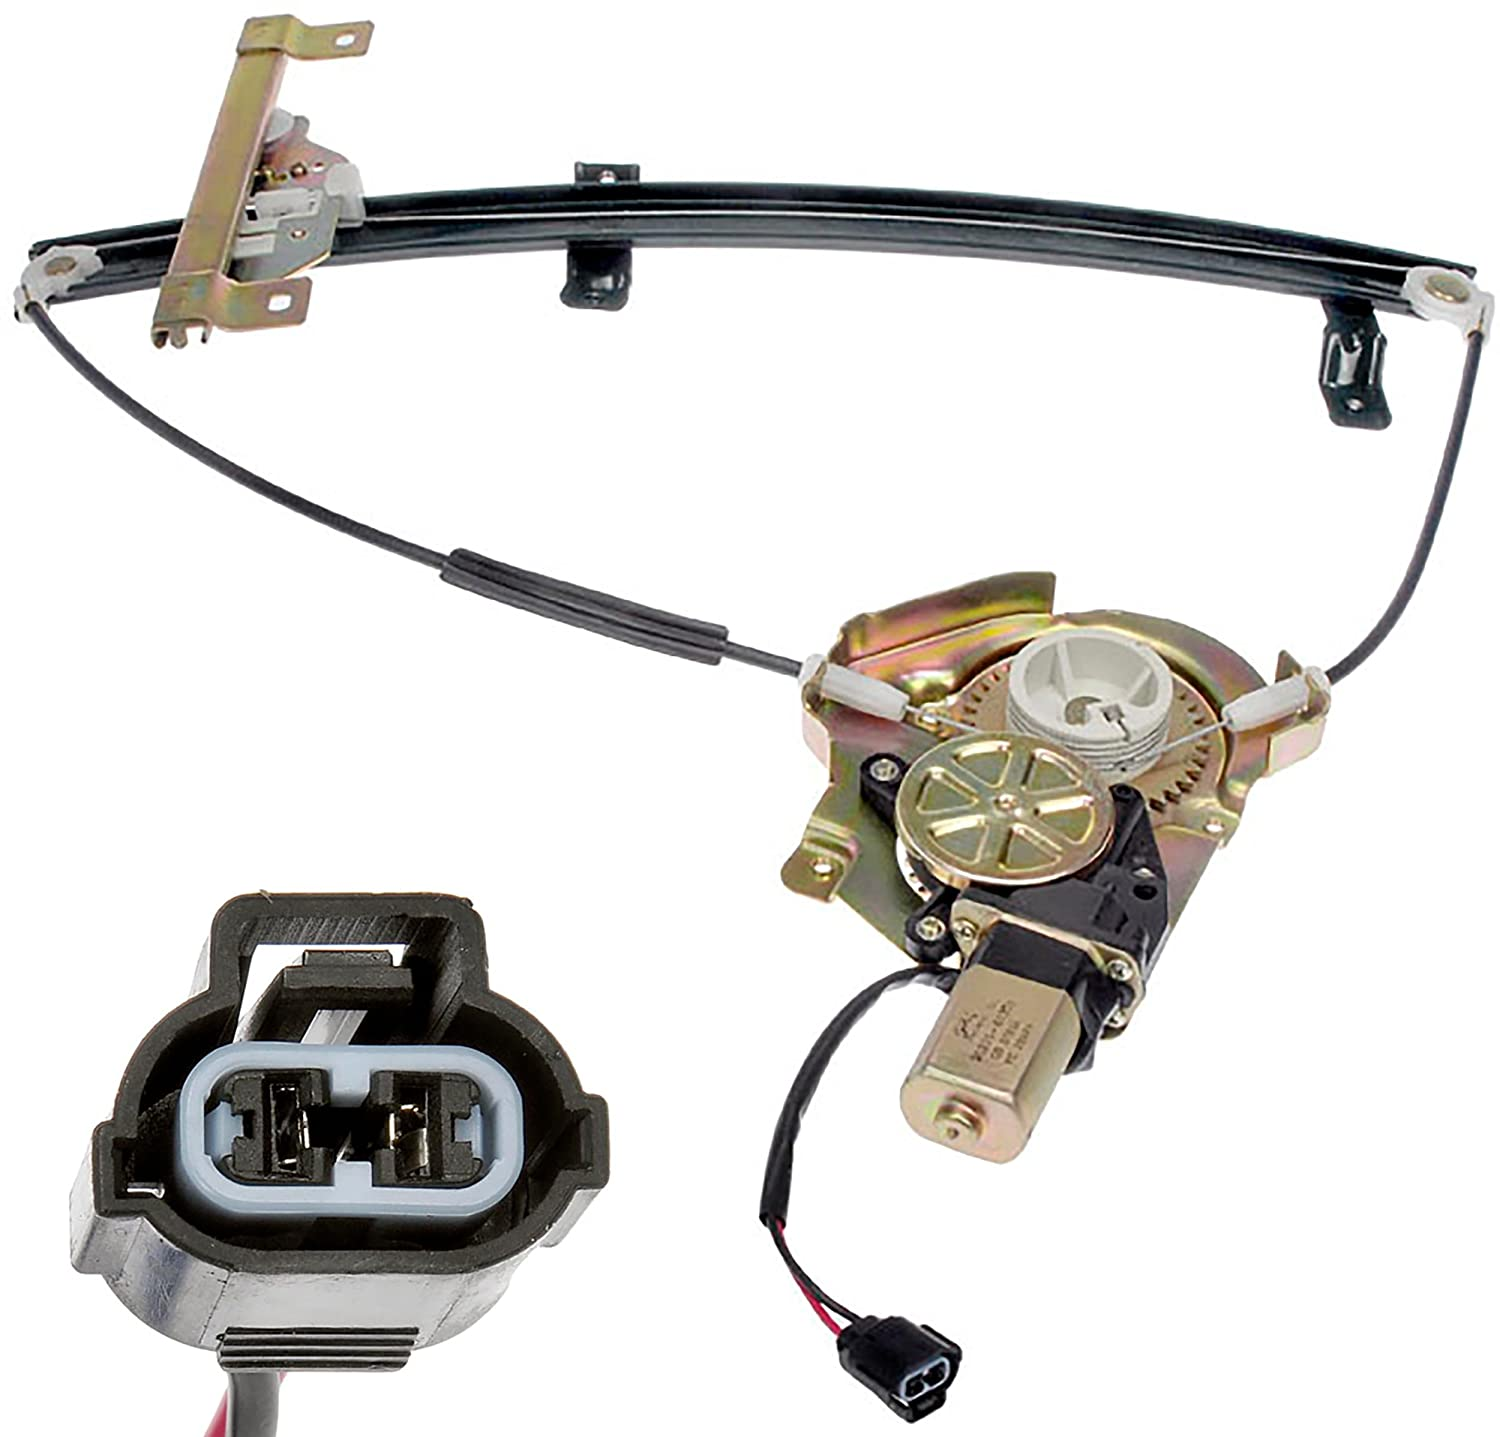 Replaces 8971658792, 8973581320 APDTY 852954 Power Window Regulator /& Motor Assembly Fits Front Passenger Side Right 1994-1997 Isuzu Rodeo Or Honda Passport